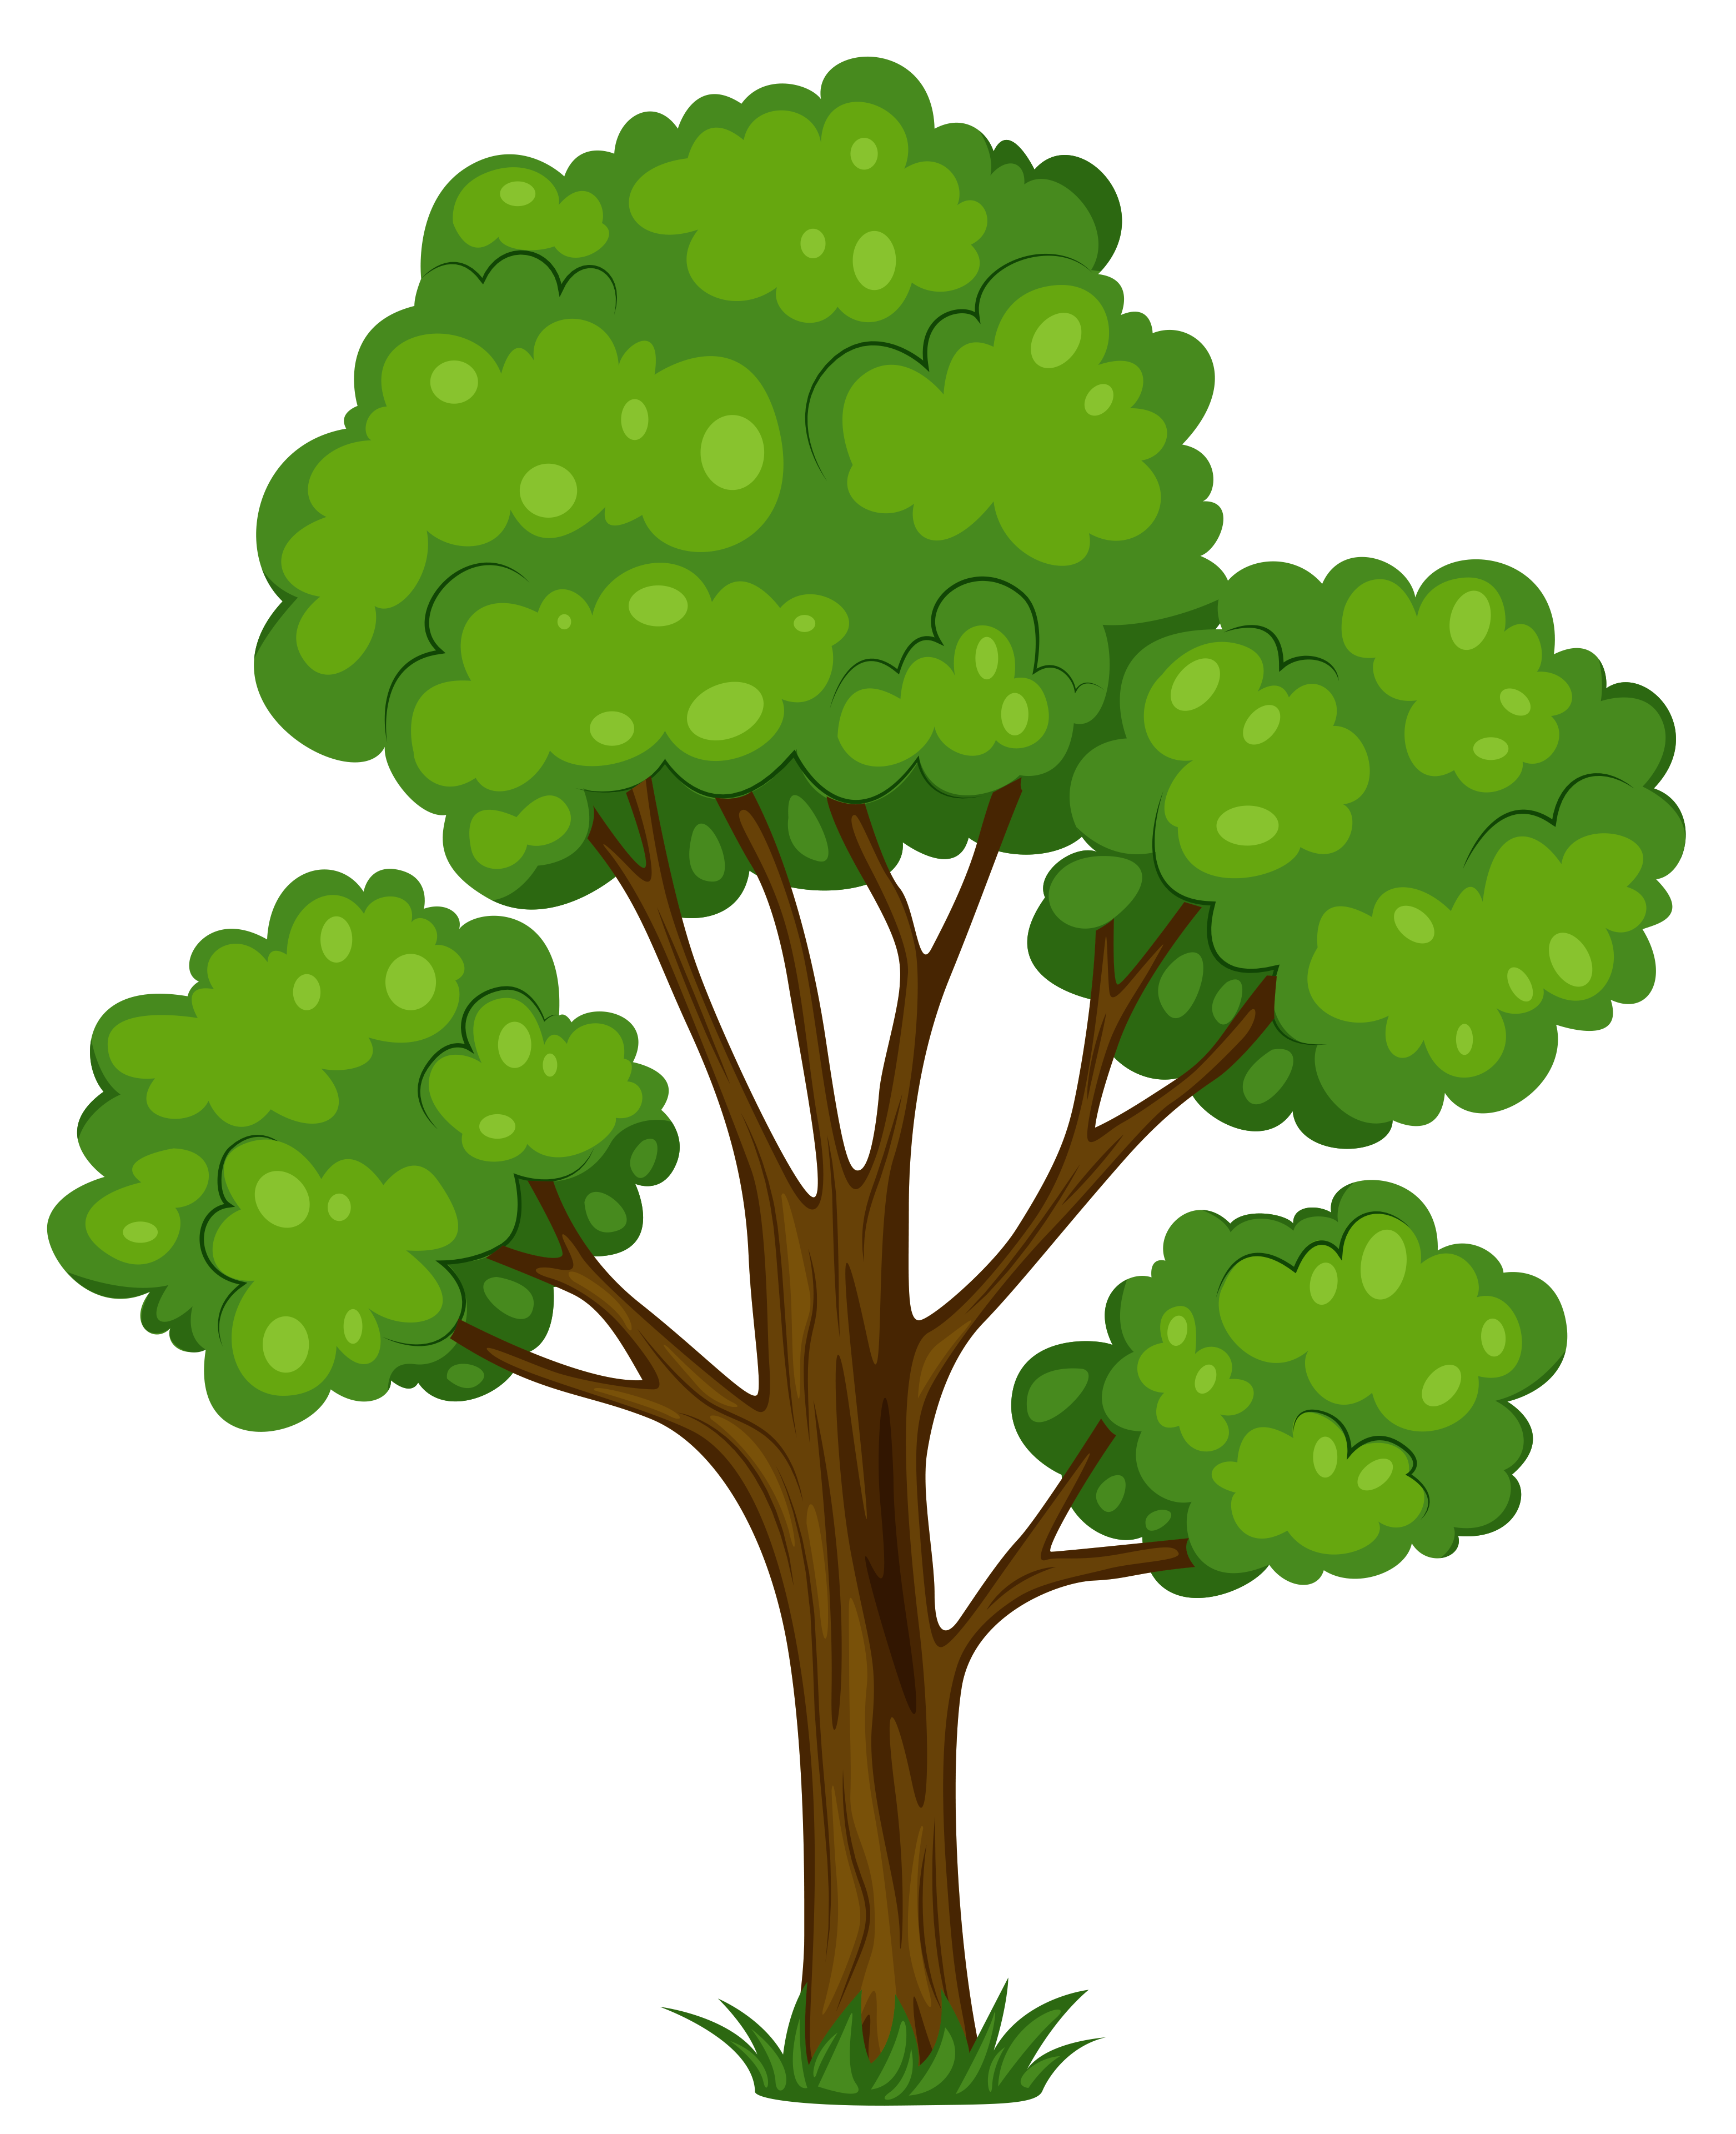 Tree Clip Art 7 - Tree Clipart PNG